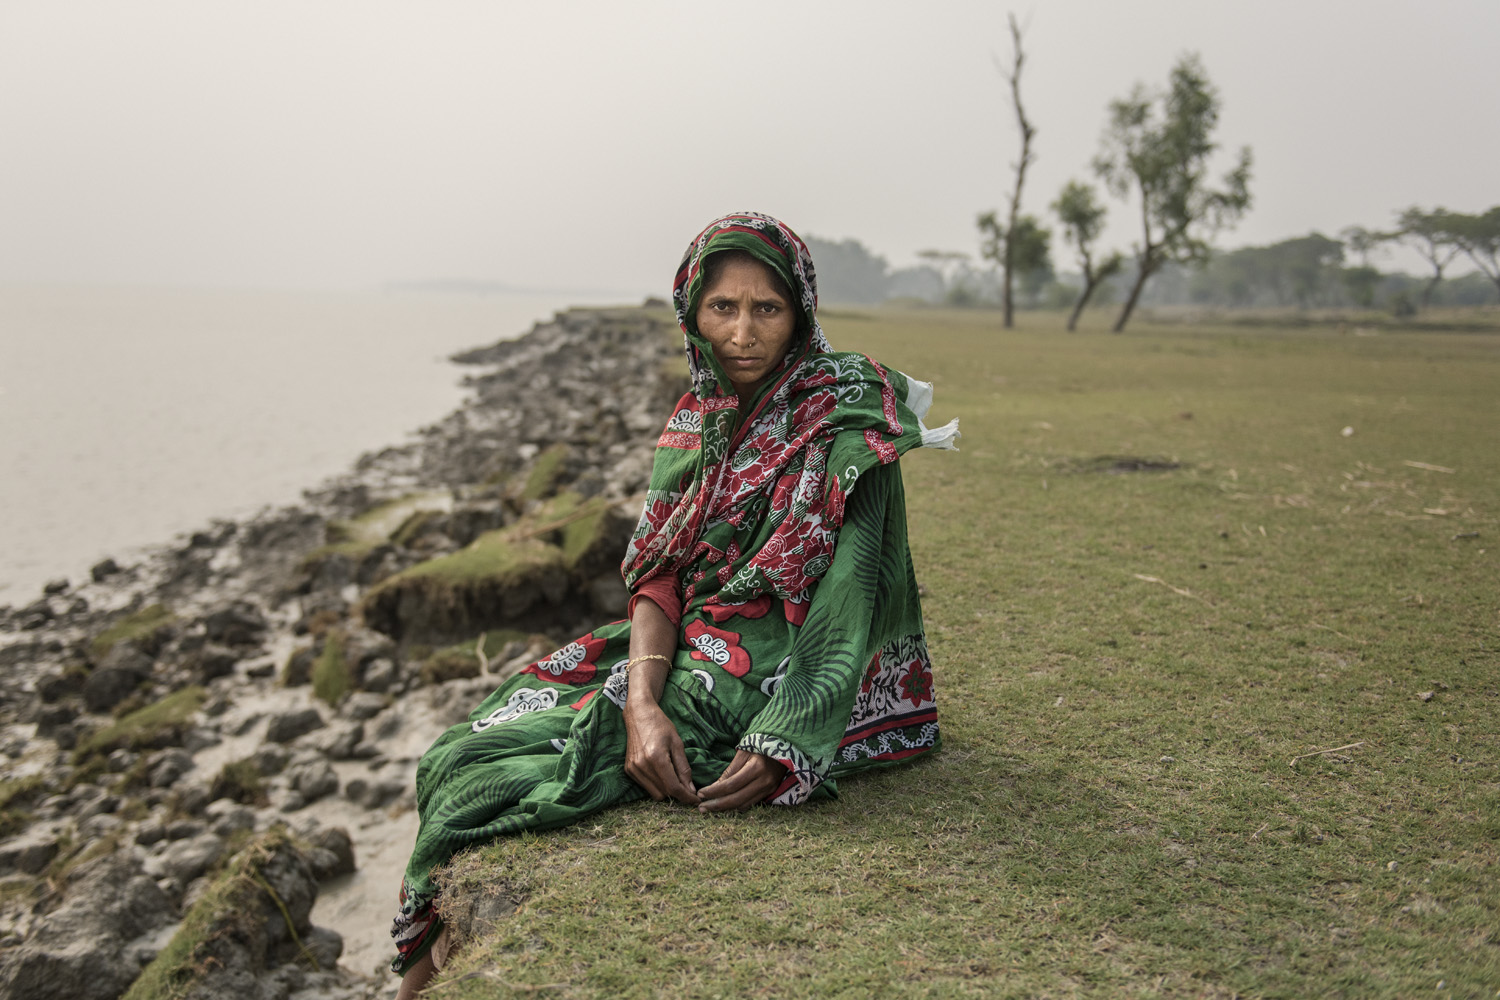 Minara begum (32), sons - Ismail(8); Belal (10)